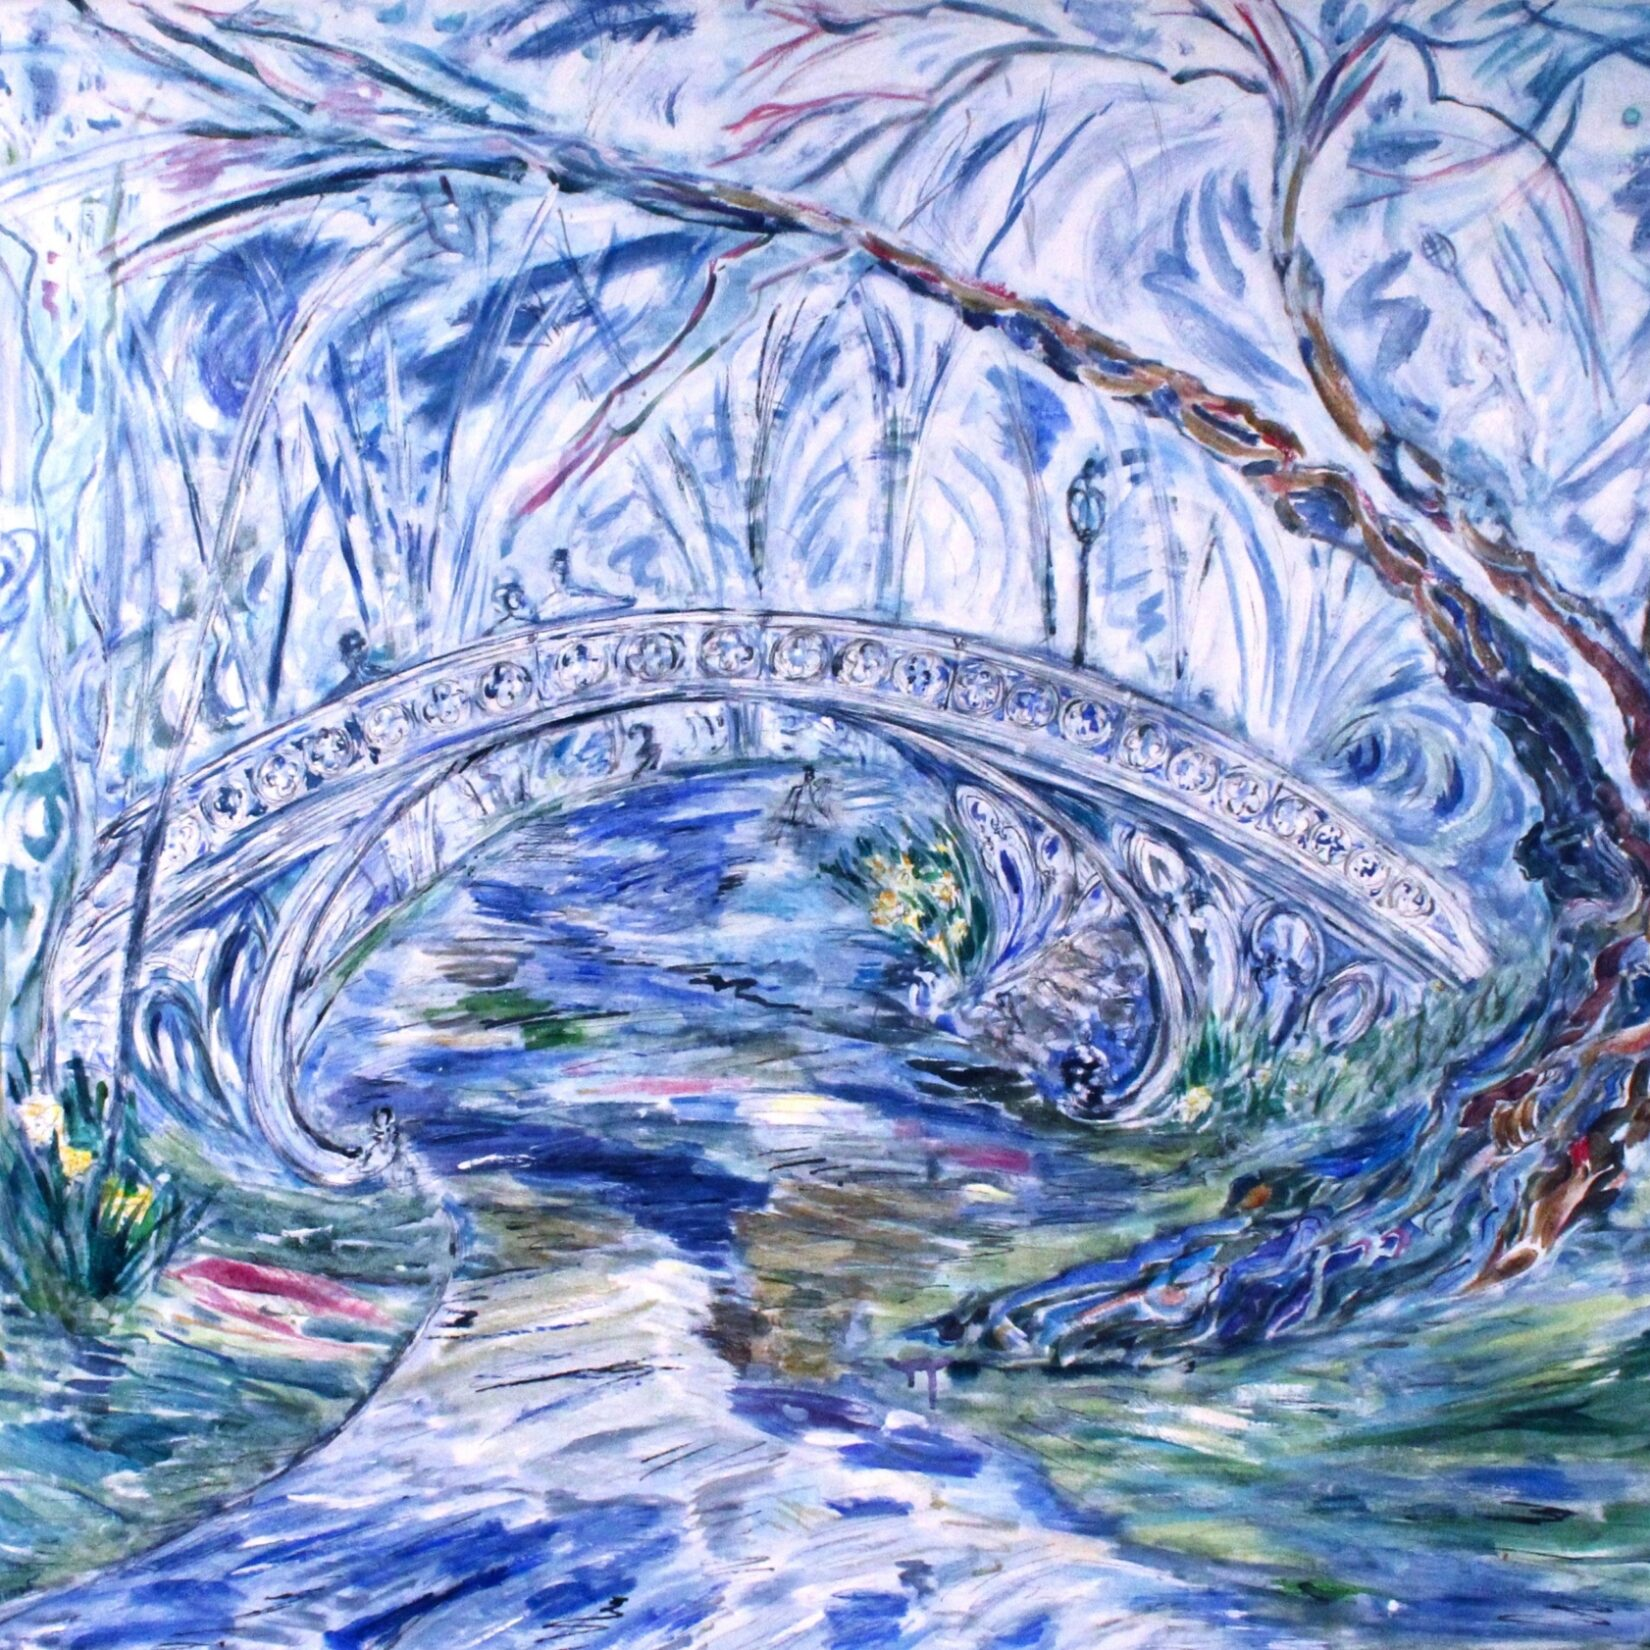 A watercolor painting of one Central Park's cast-iron bridges, with predominate  blues and greens.